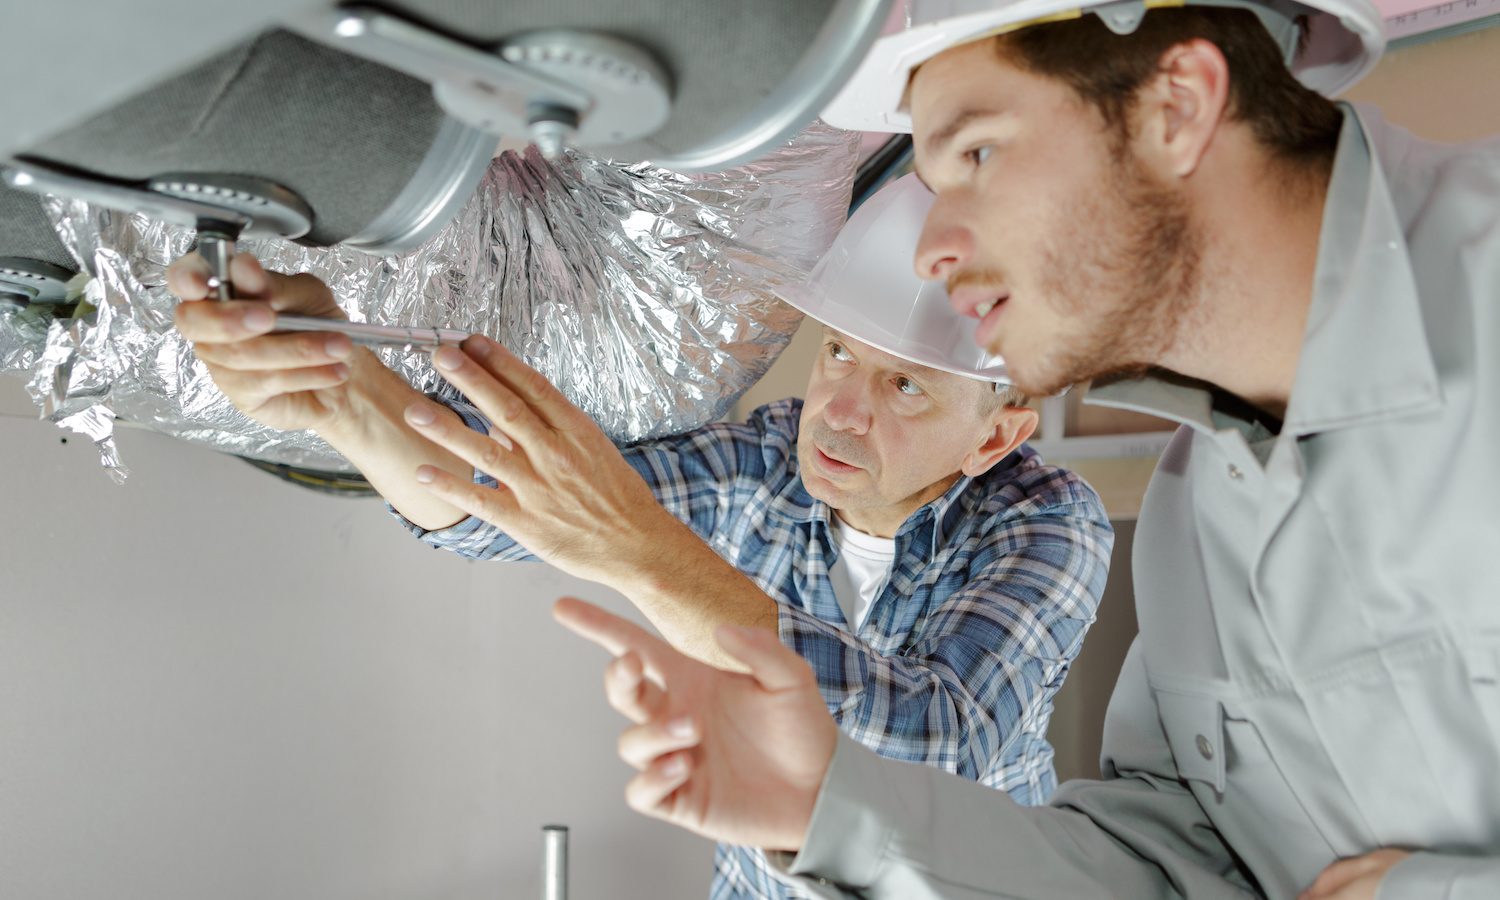 HVAC workers fixing ventilation